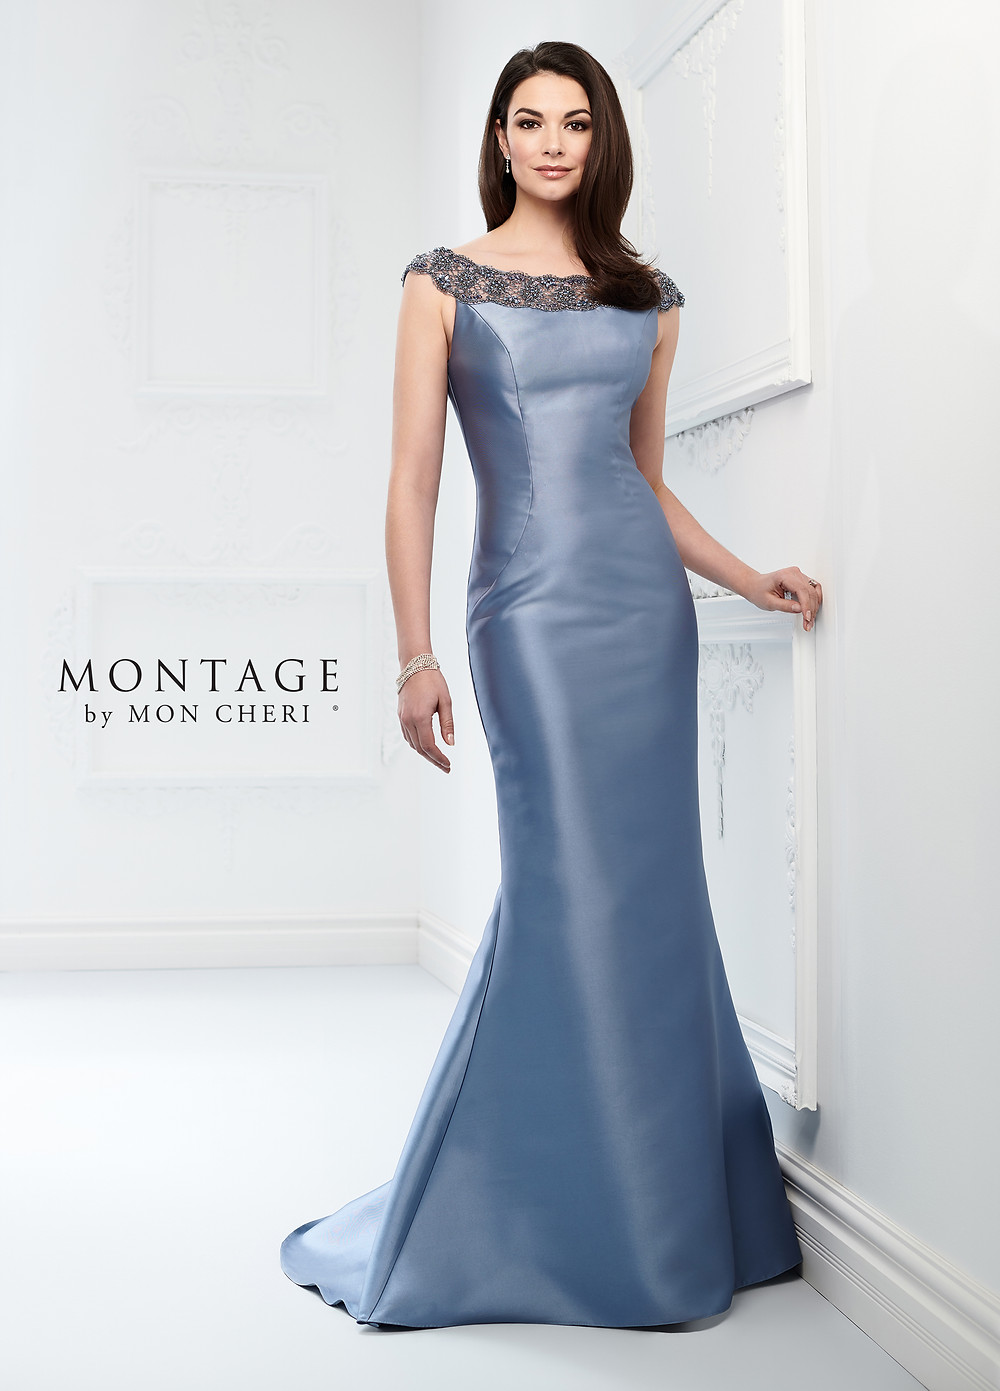 bateau neckline mother of the bride dress blue satin